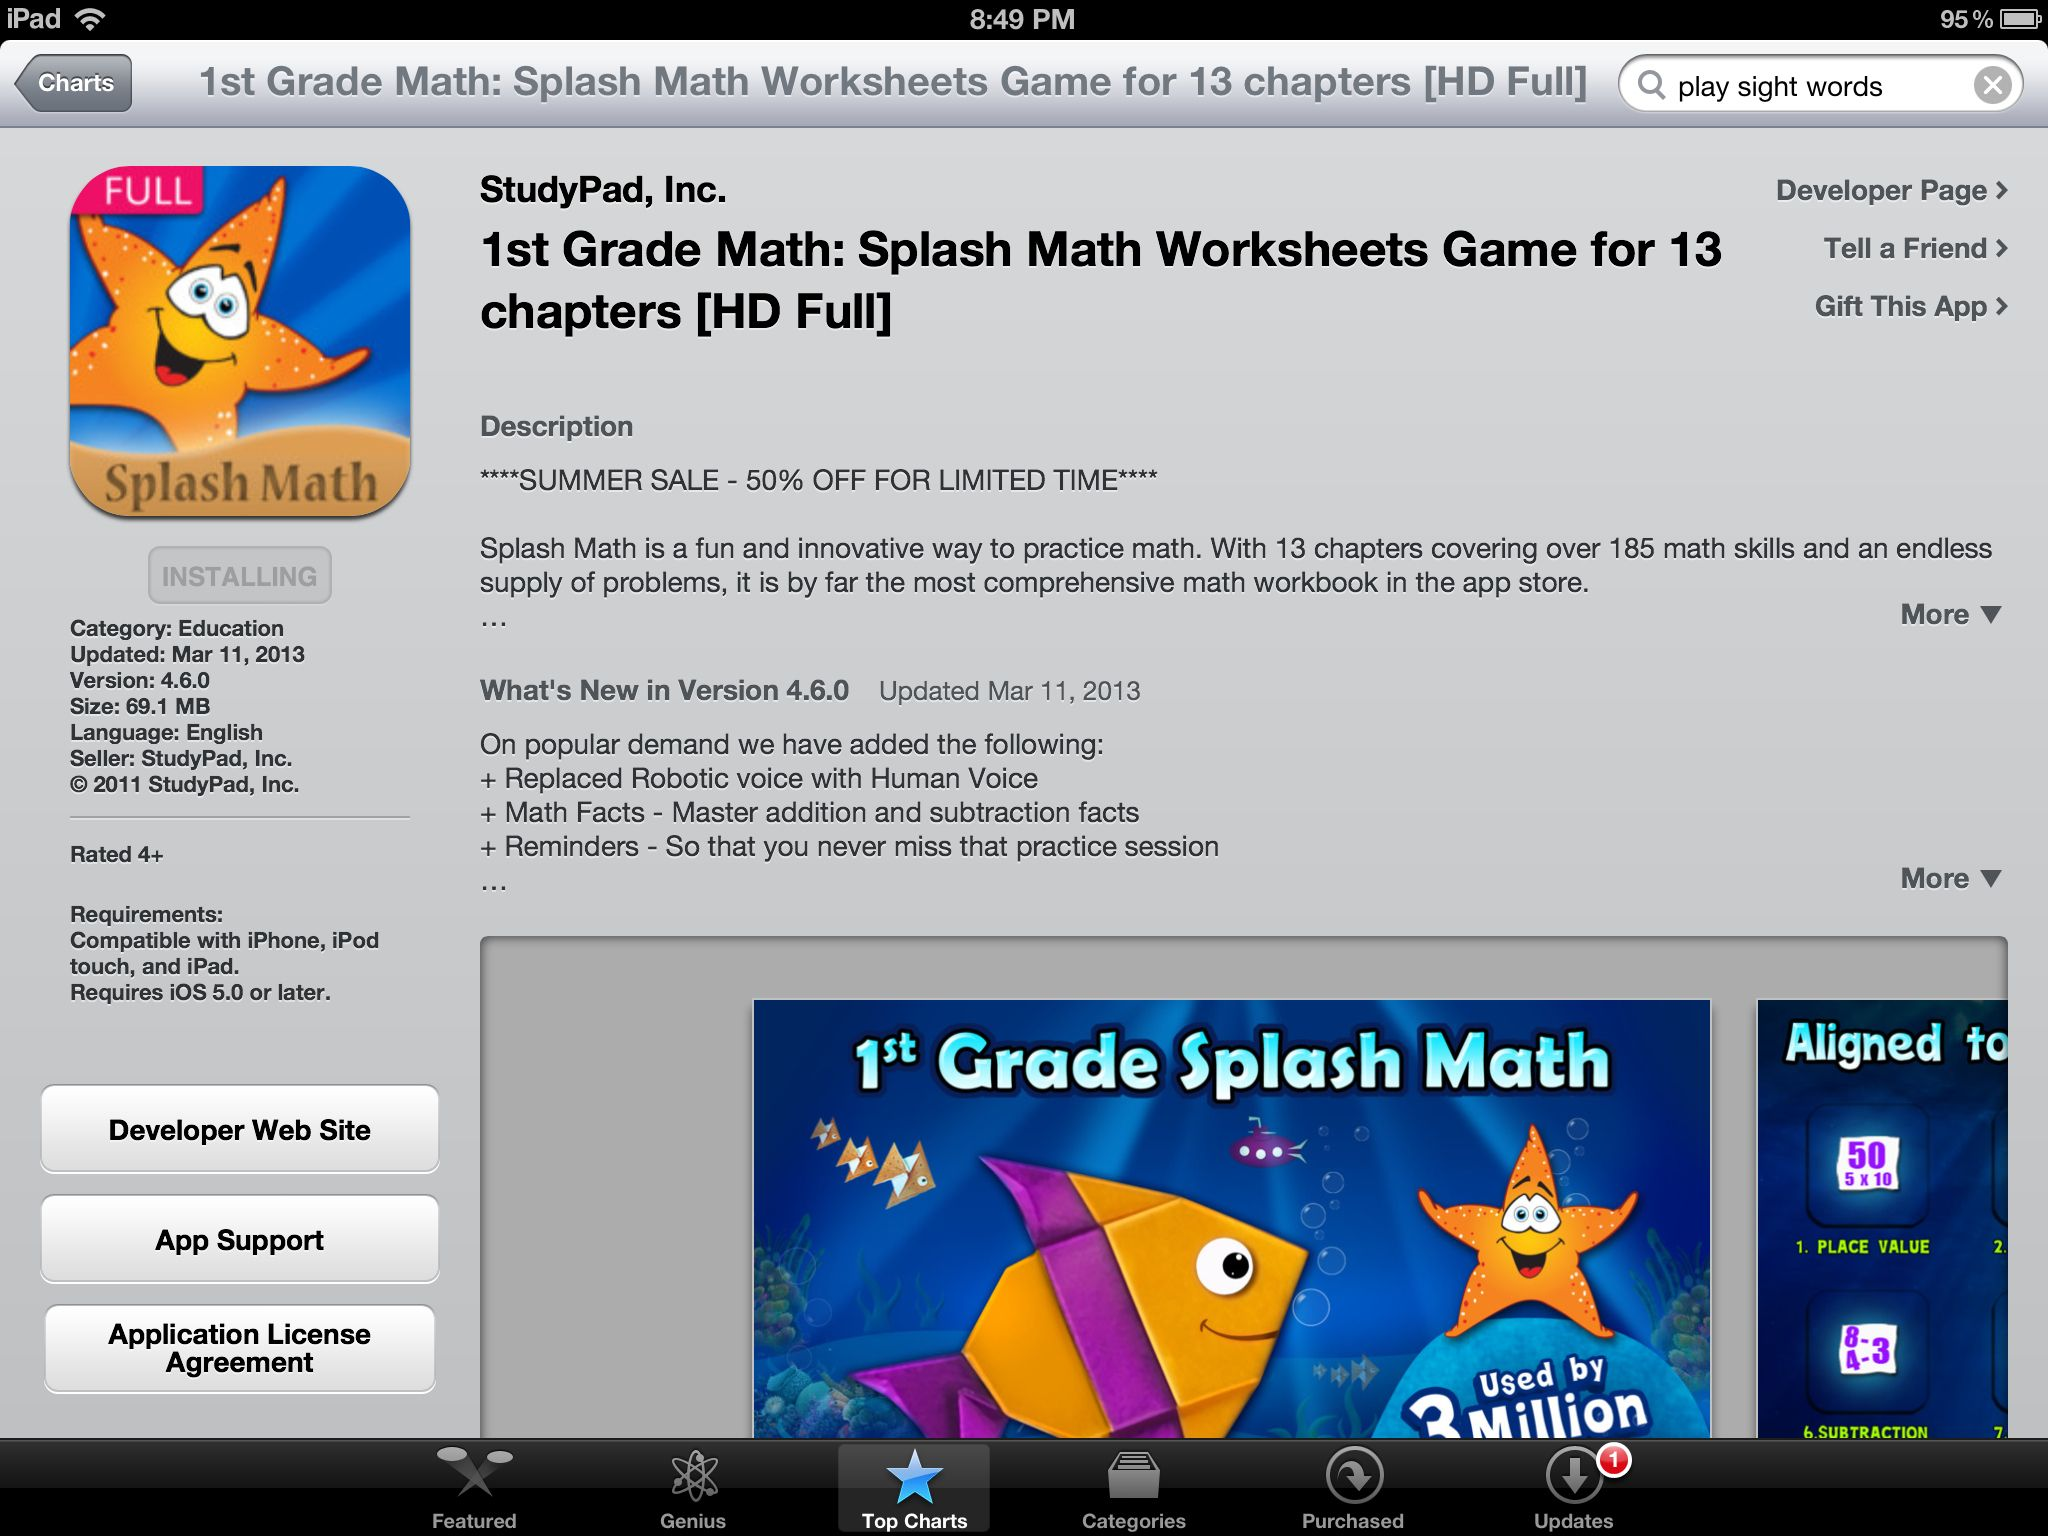 Super App For 1st Graders If You Have An Ipad In The Classroom It S Usually 10 Bucks Educational Apps Fun Math Summer Math [ 1536 x 2048 Pixel ]